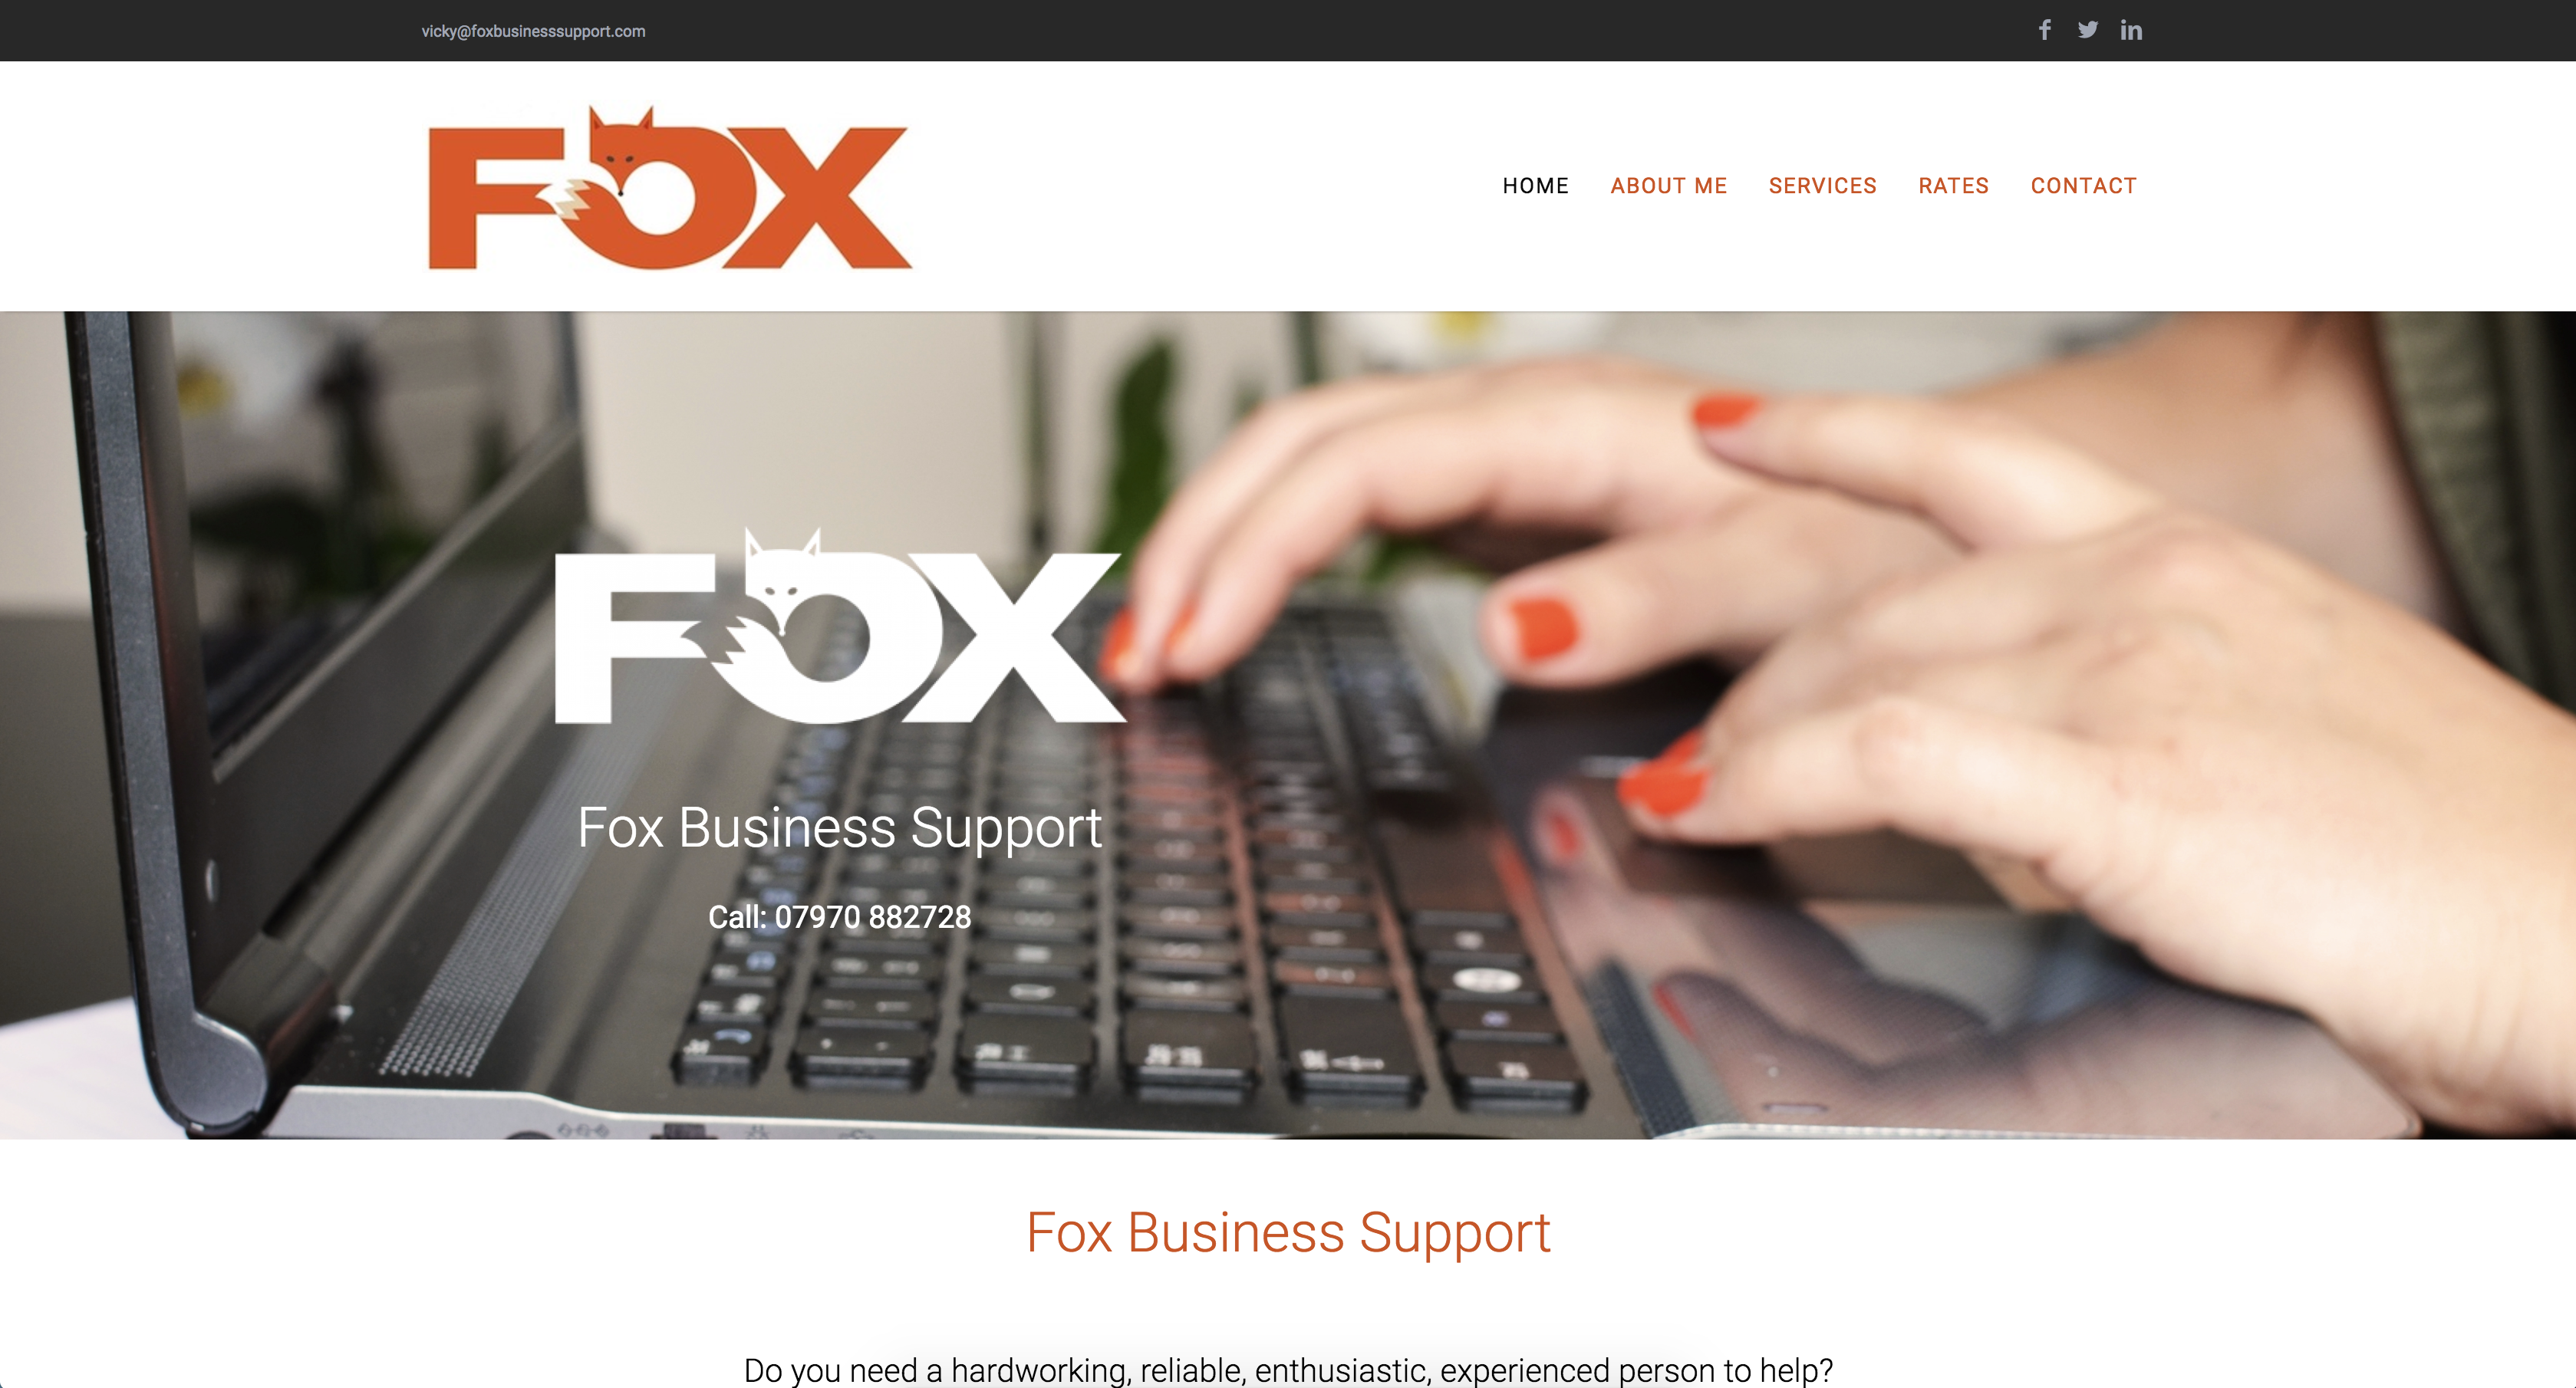 fox business support homepage